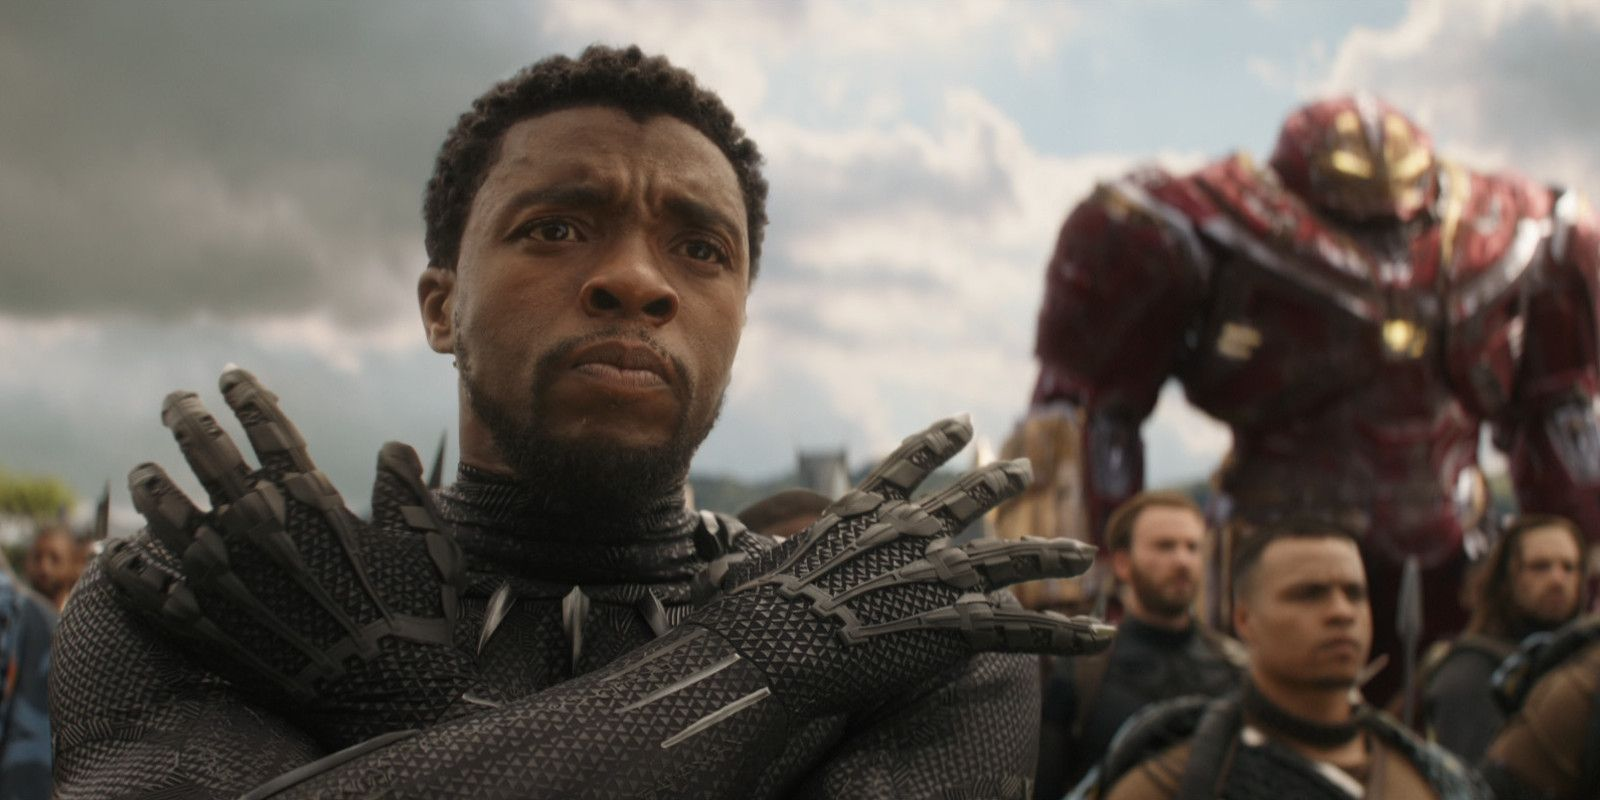 Marvel Black Panther Black Panther Avengers Infinity: Infinity War's Second Weekend Box Office May Match Black